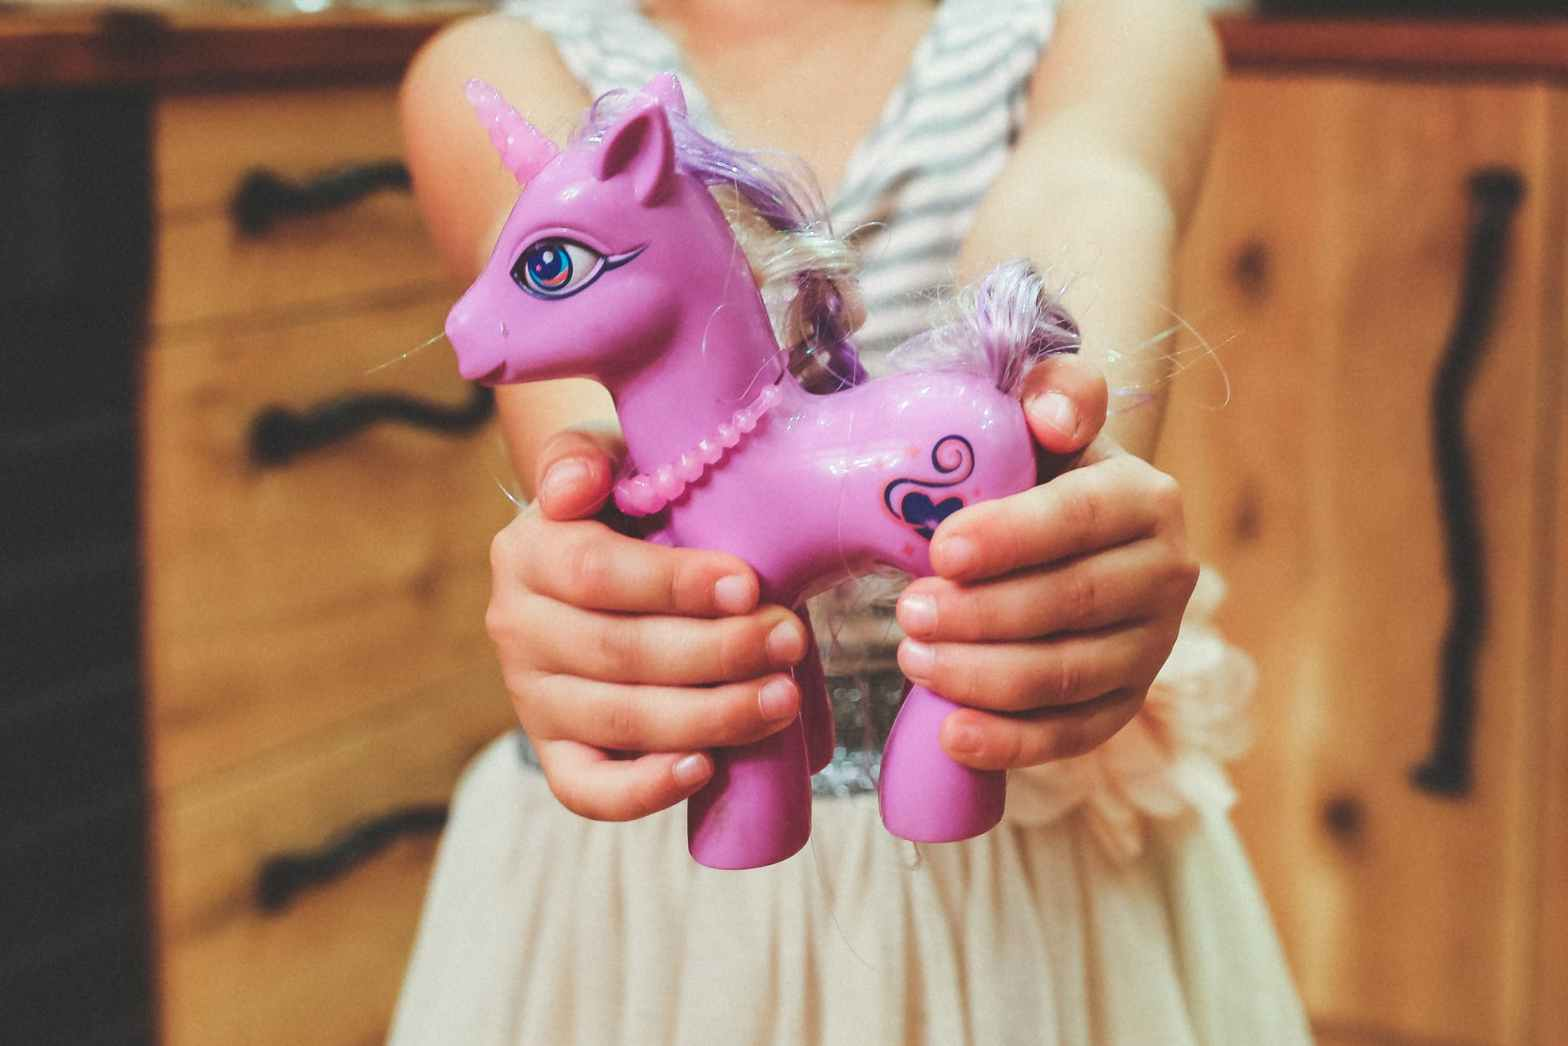 Young girl holding toy pony with both hands in front of camera. The pony has a plastic necklace, a unicorn horn, & tangled hair coming from it's mane, and has a tattoo of a heart on it's side. Moxie Family Therapy offers therapy for children, play therapy in orange county, art therapy for children, and more. Contact our child therapist today for the support you deserve!